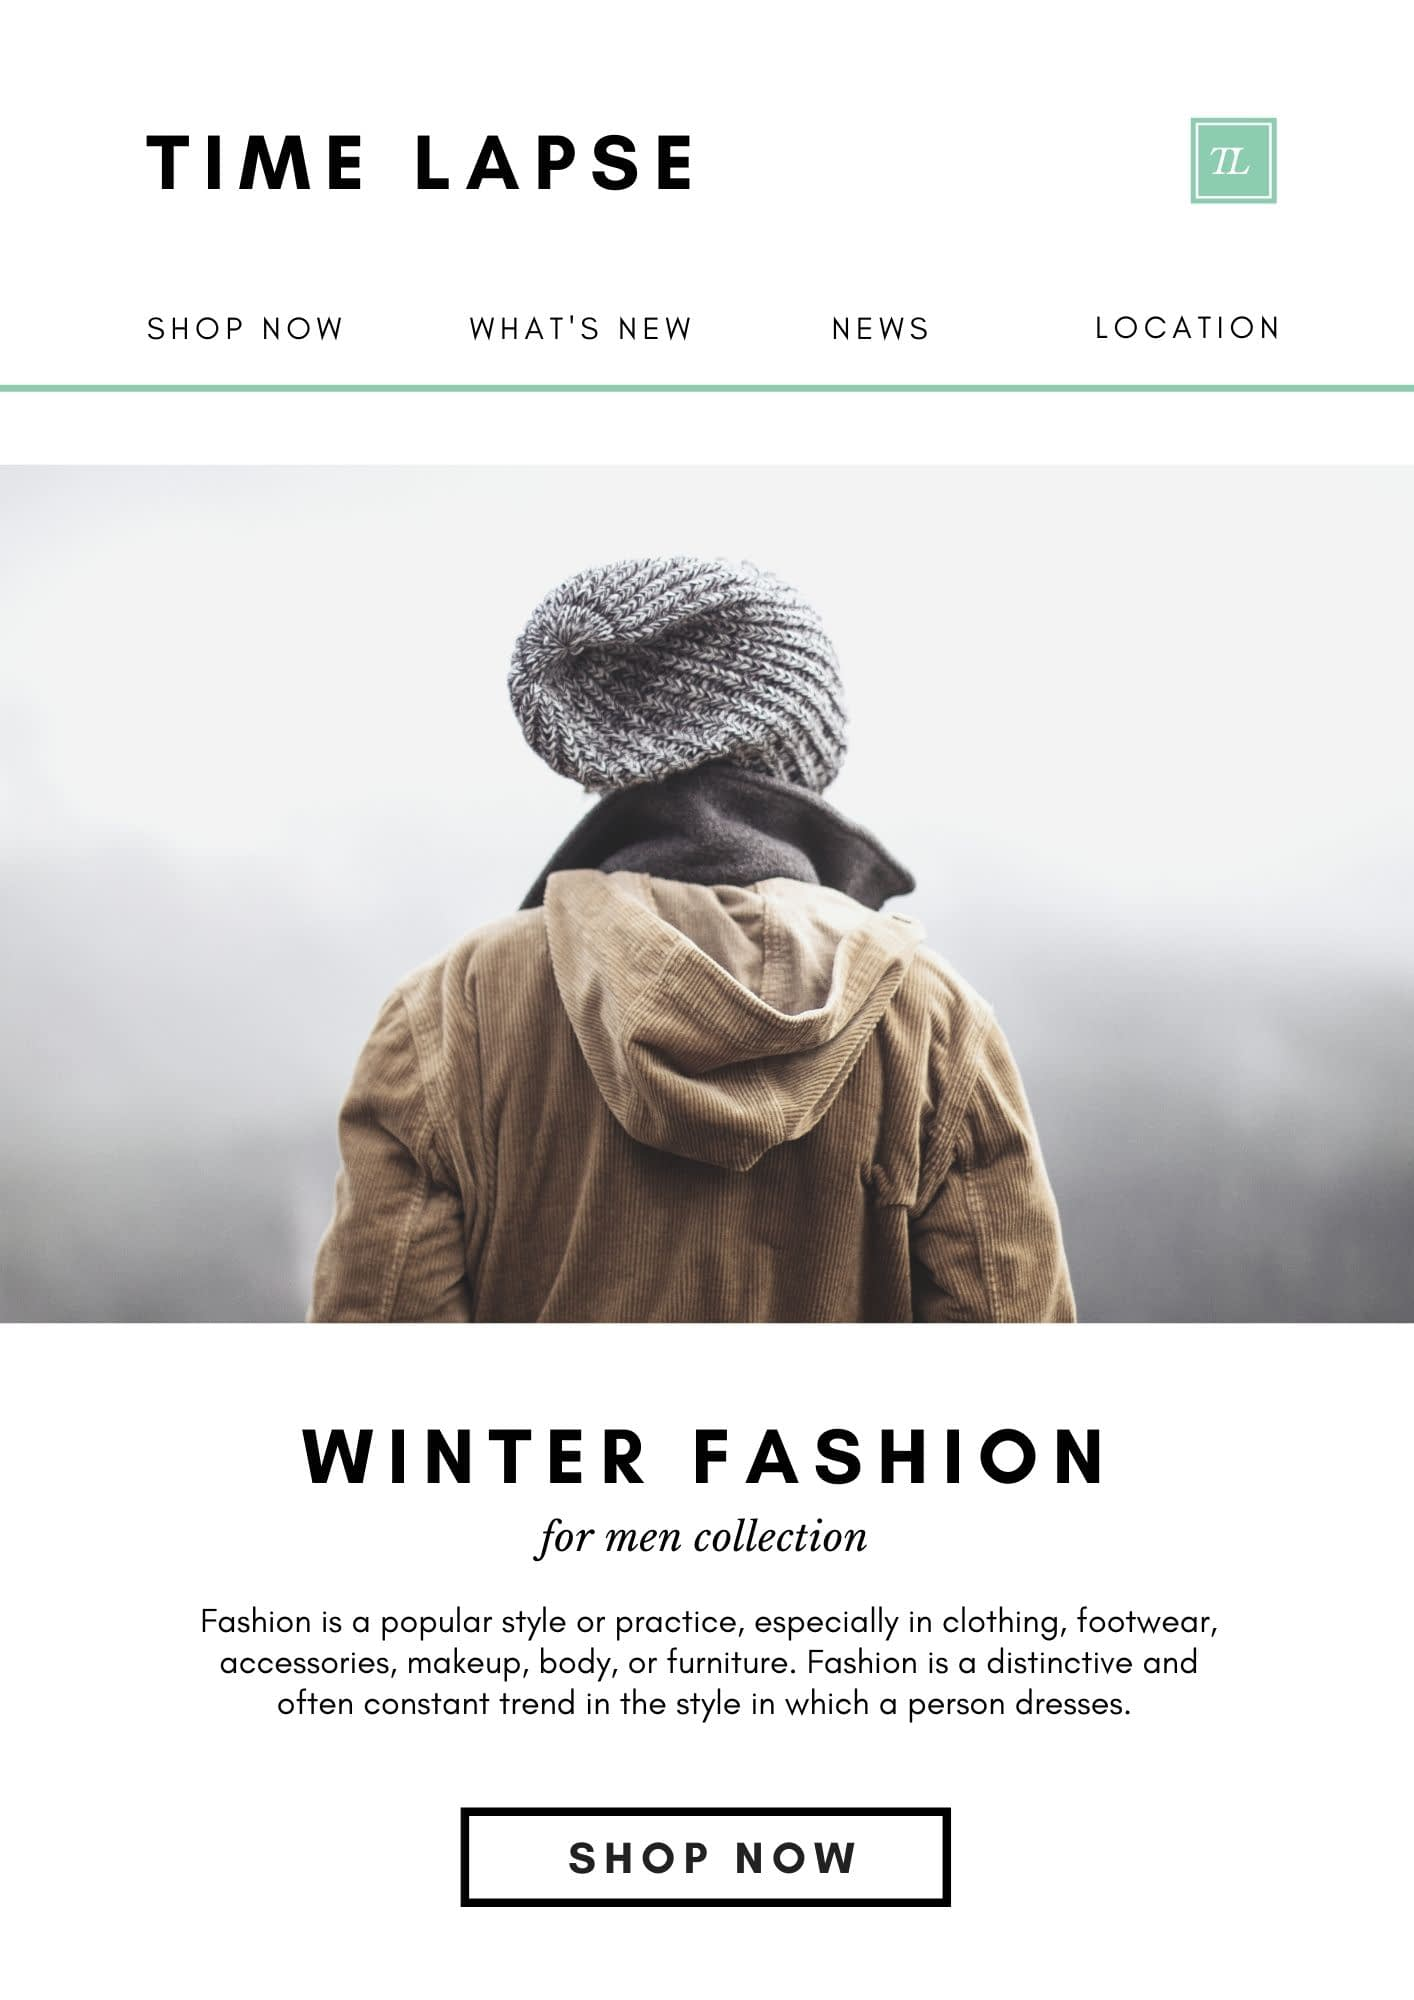 Winter Fashion is the email template showing with a Shop Now Button